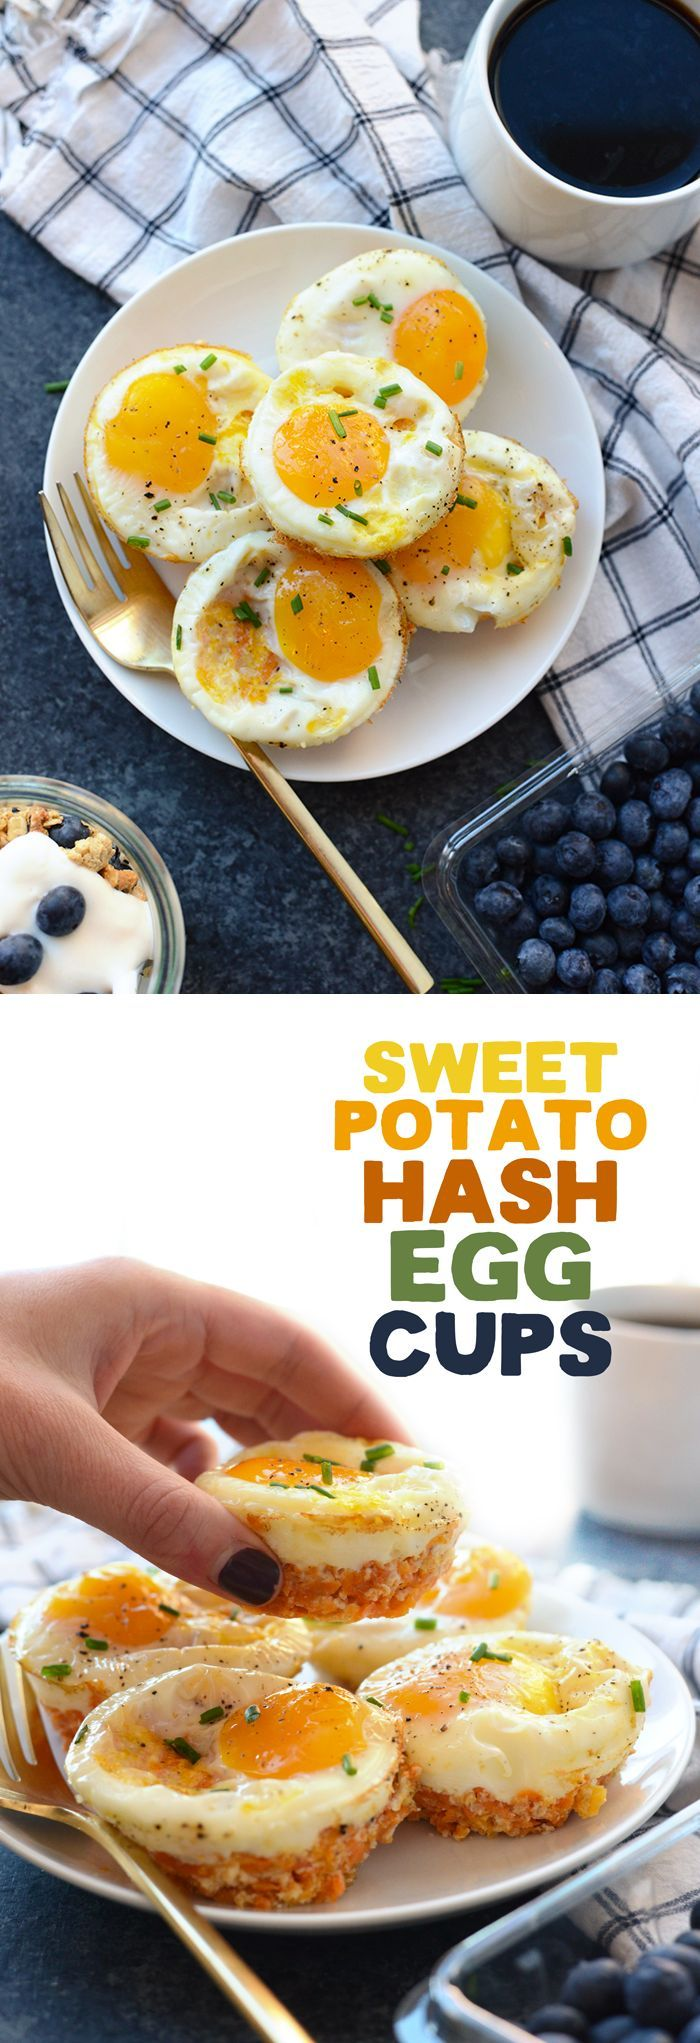 Sweet Potato Hash Egg Cups - we're taking baked eggs to the next level and adding a sweet potato/cheddar cheese base for the most delicious, satisfying savory breakfast you'll eat this year!